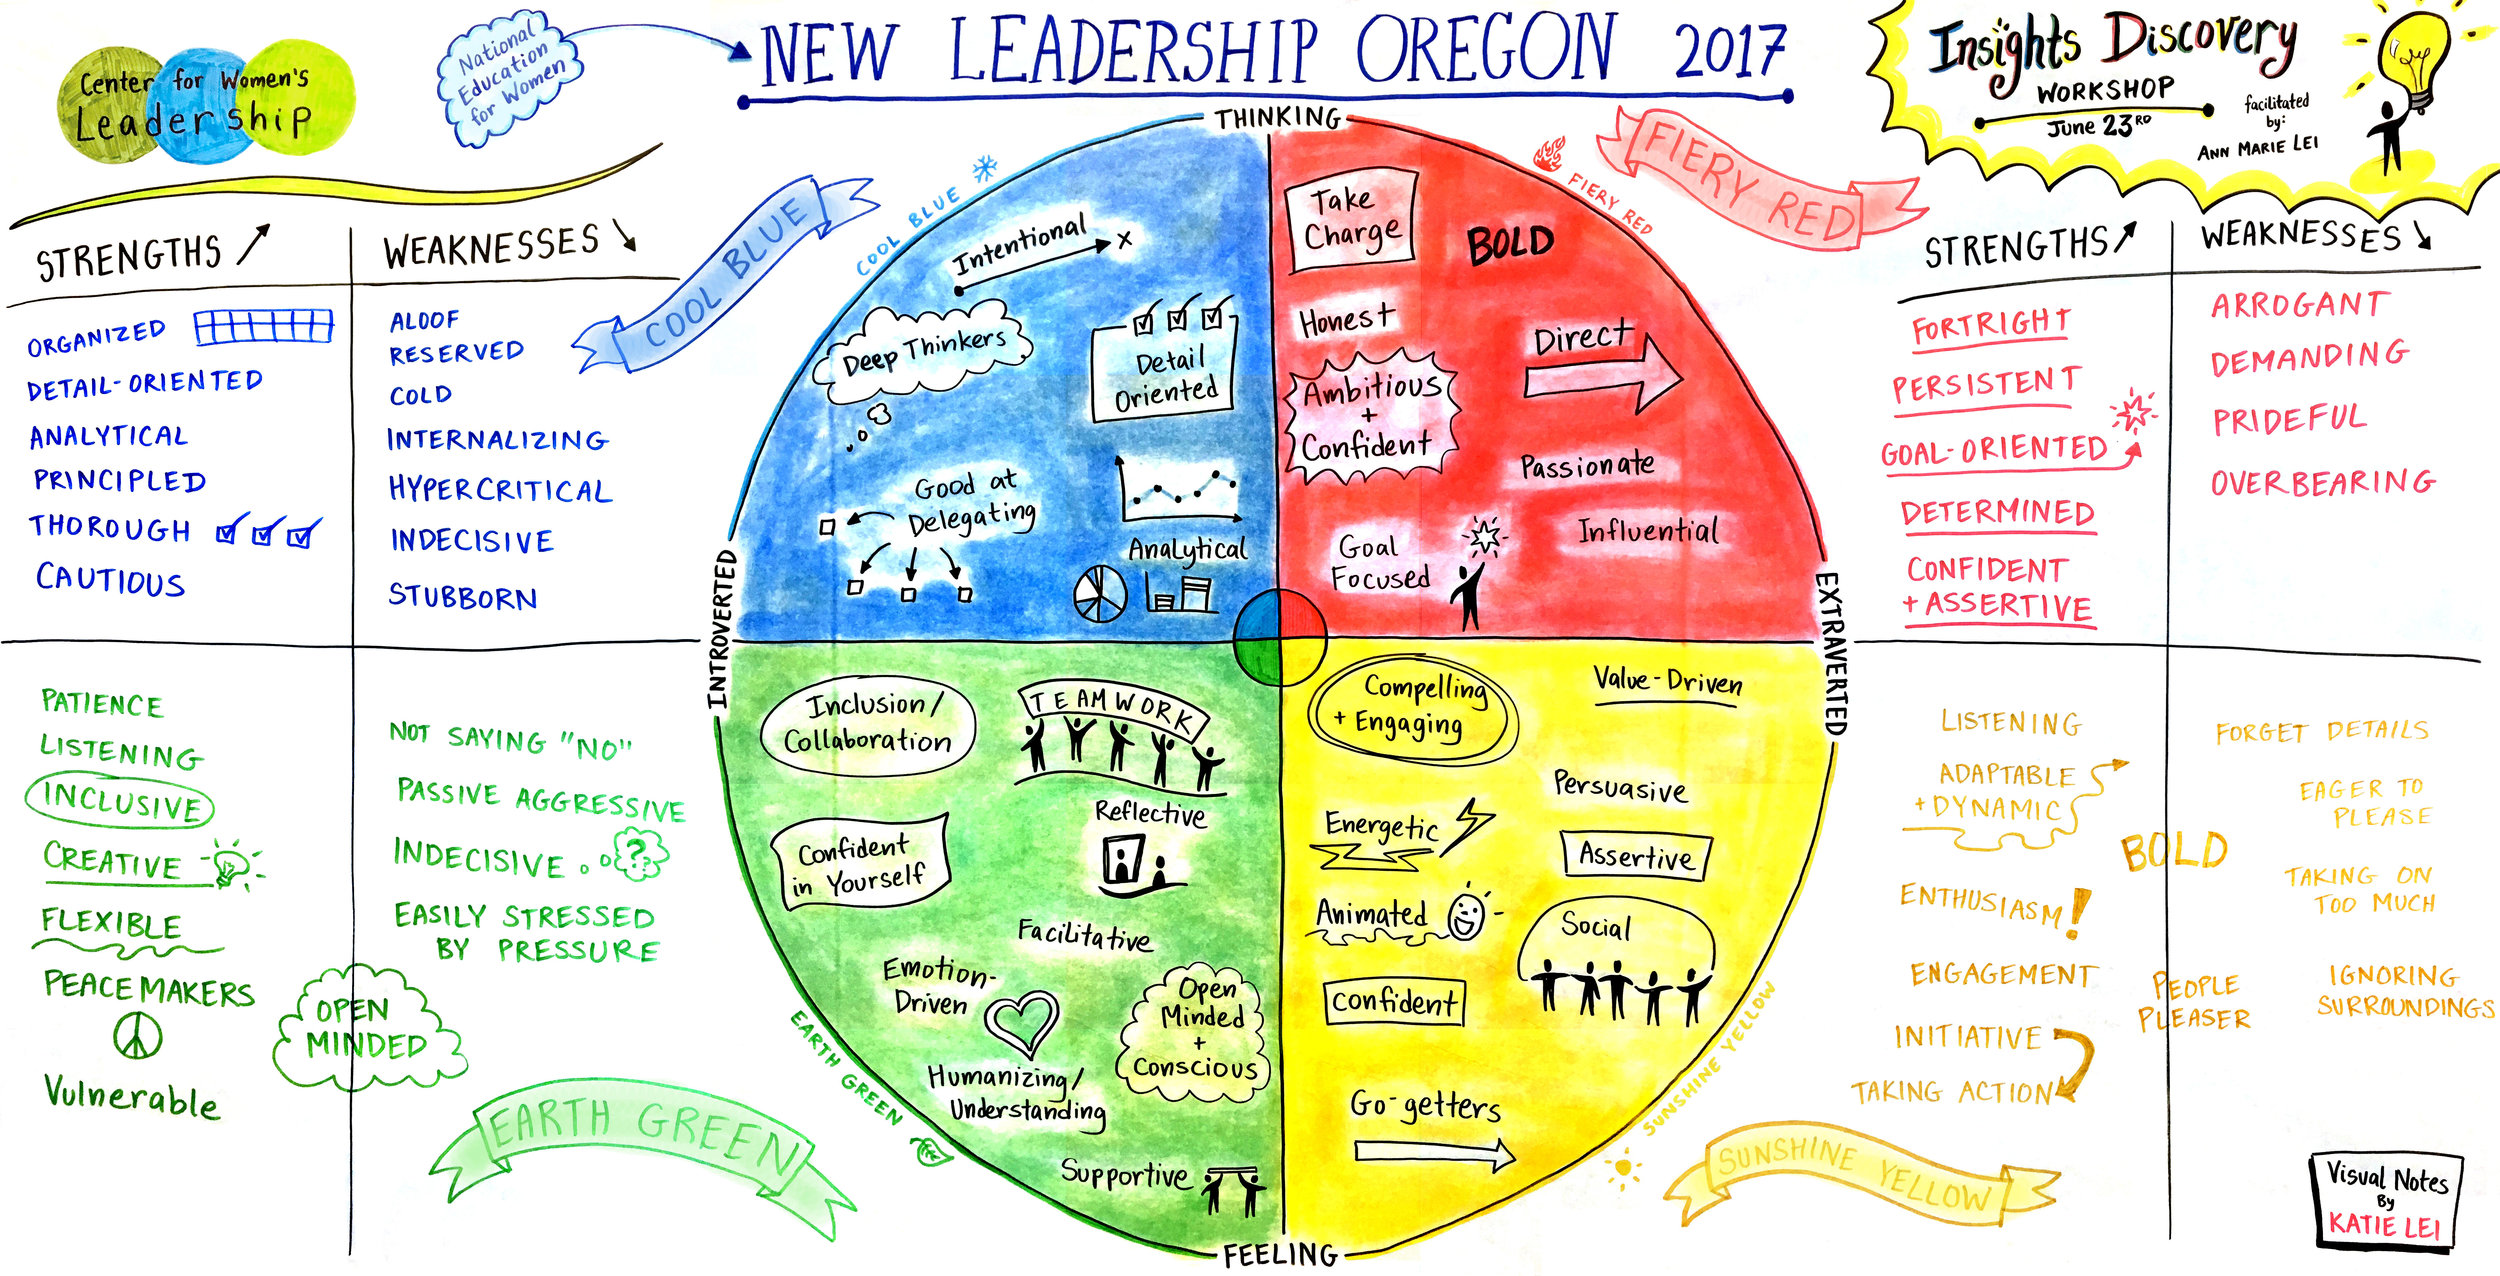 Visual Notes by Katie Lei for NEW Leadership Oregon